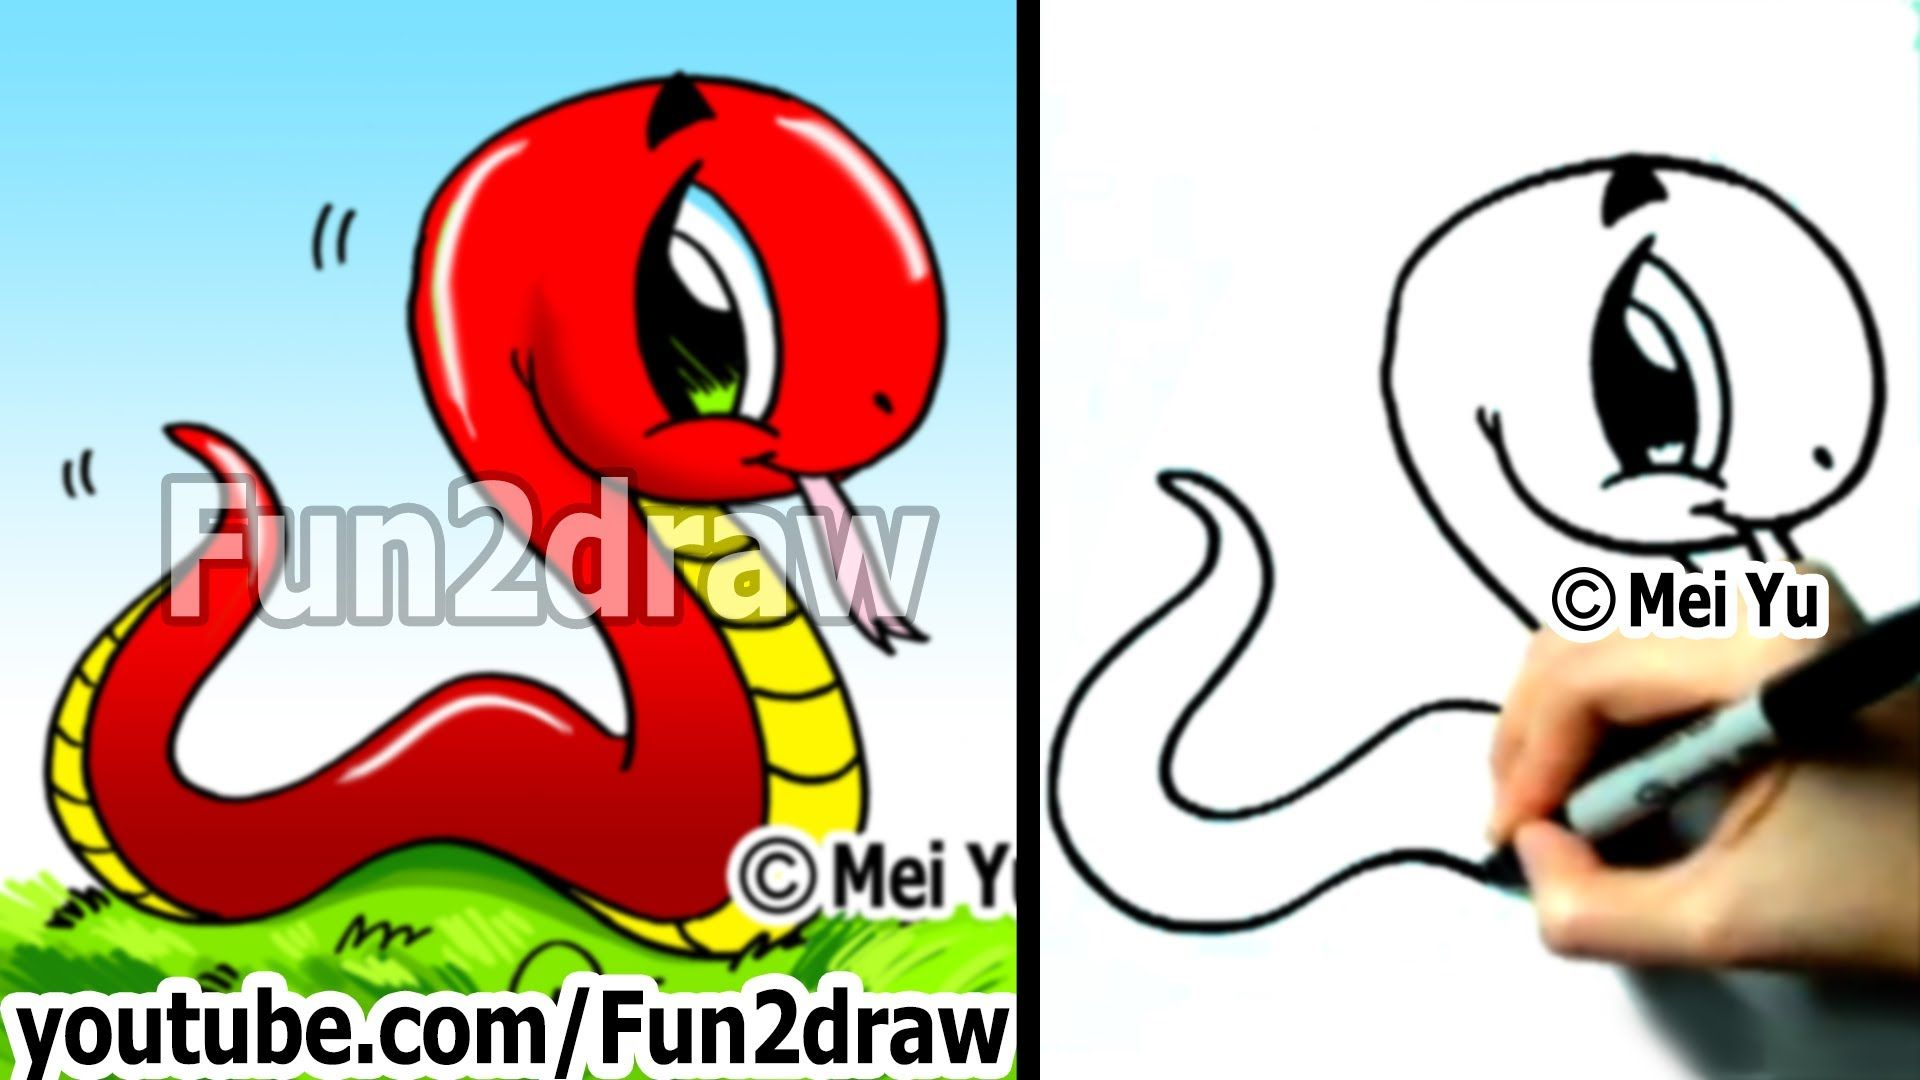 How To Draw A Snake Easy Things To Draw Cute Drawings Fun2draw Fun2draw Easy Drawings Cute Cartoon Drawings